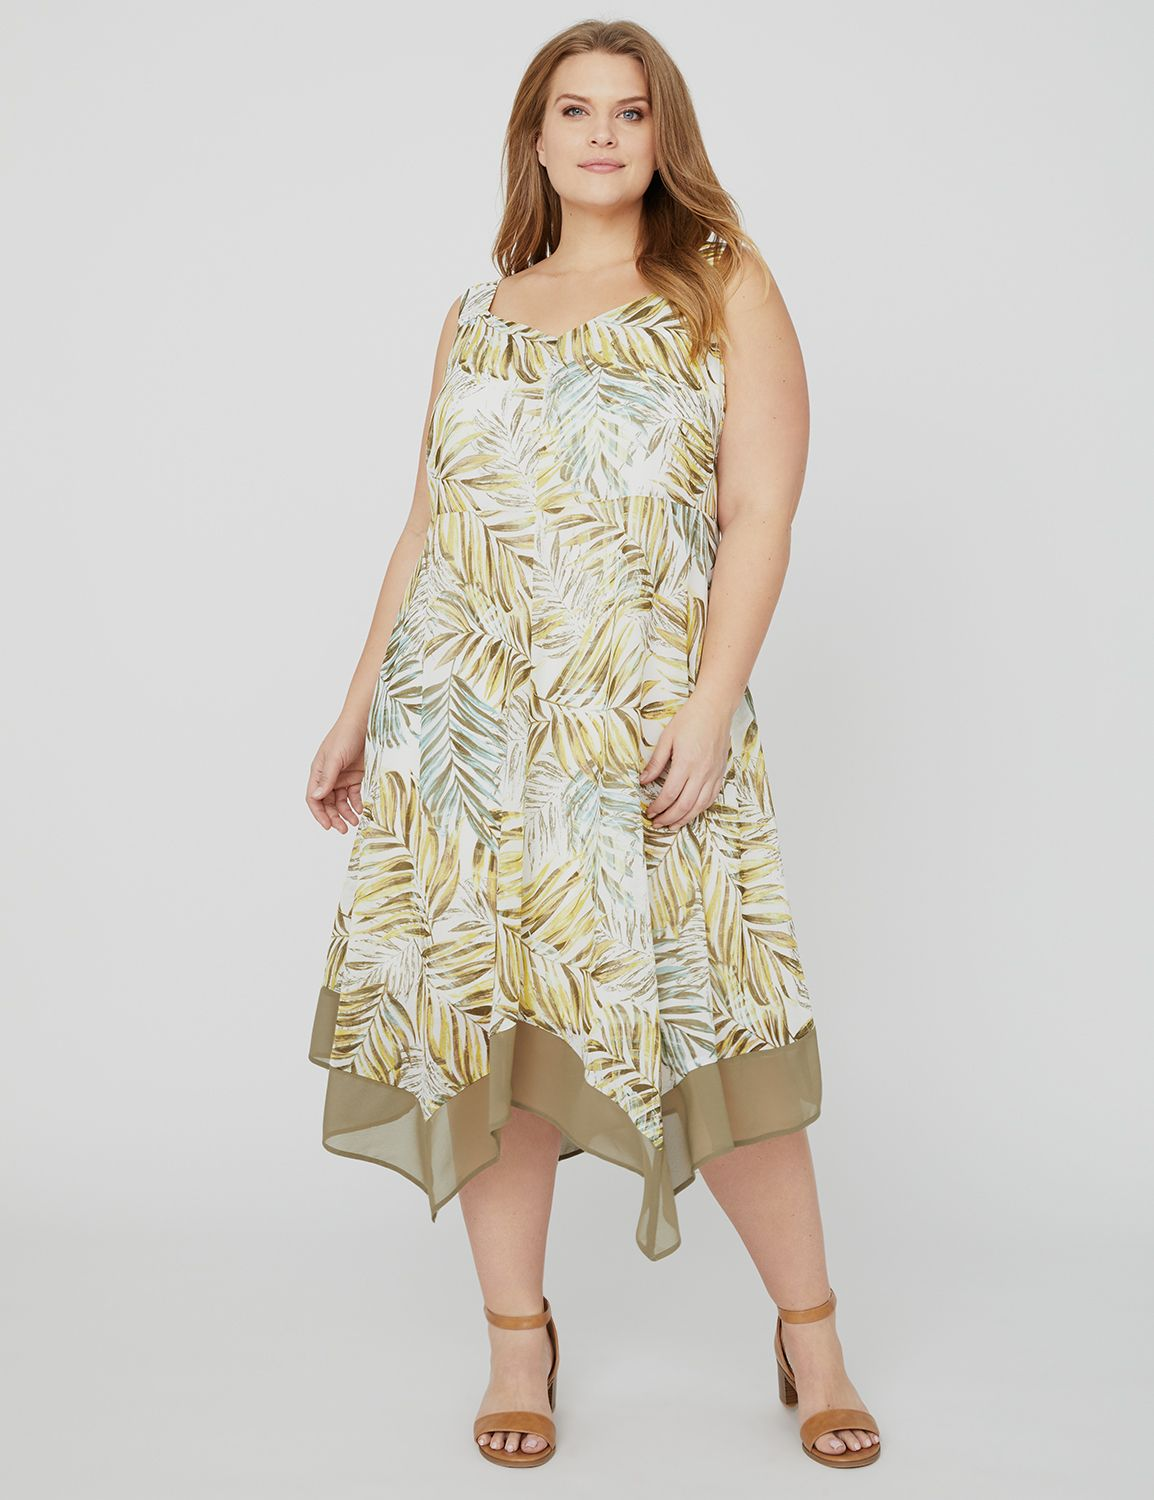 Greenwood Imprint Dress with Hankerchief Hem 1089938 Printed HANKY HEM DRESS wit MP-300102381